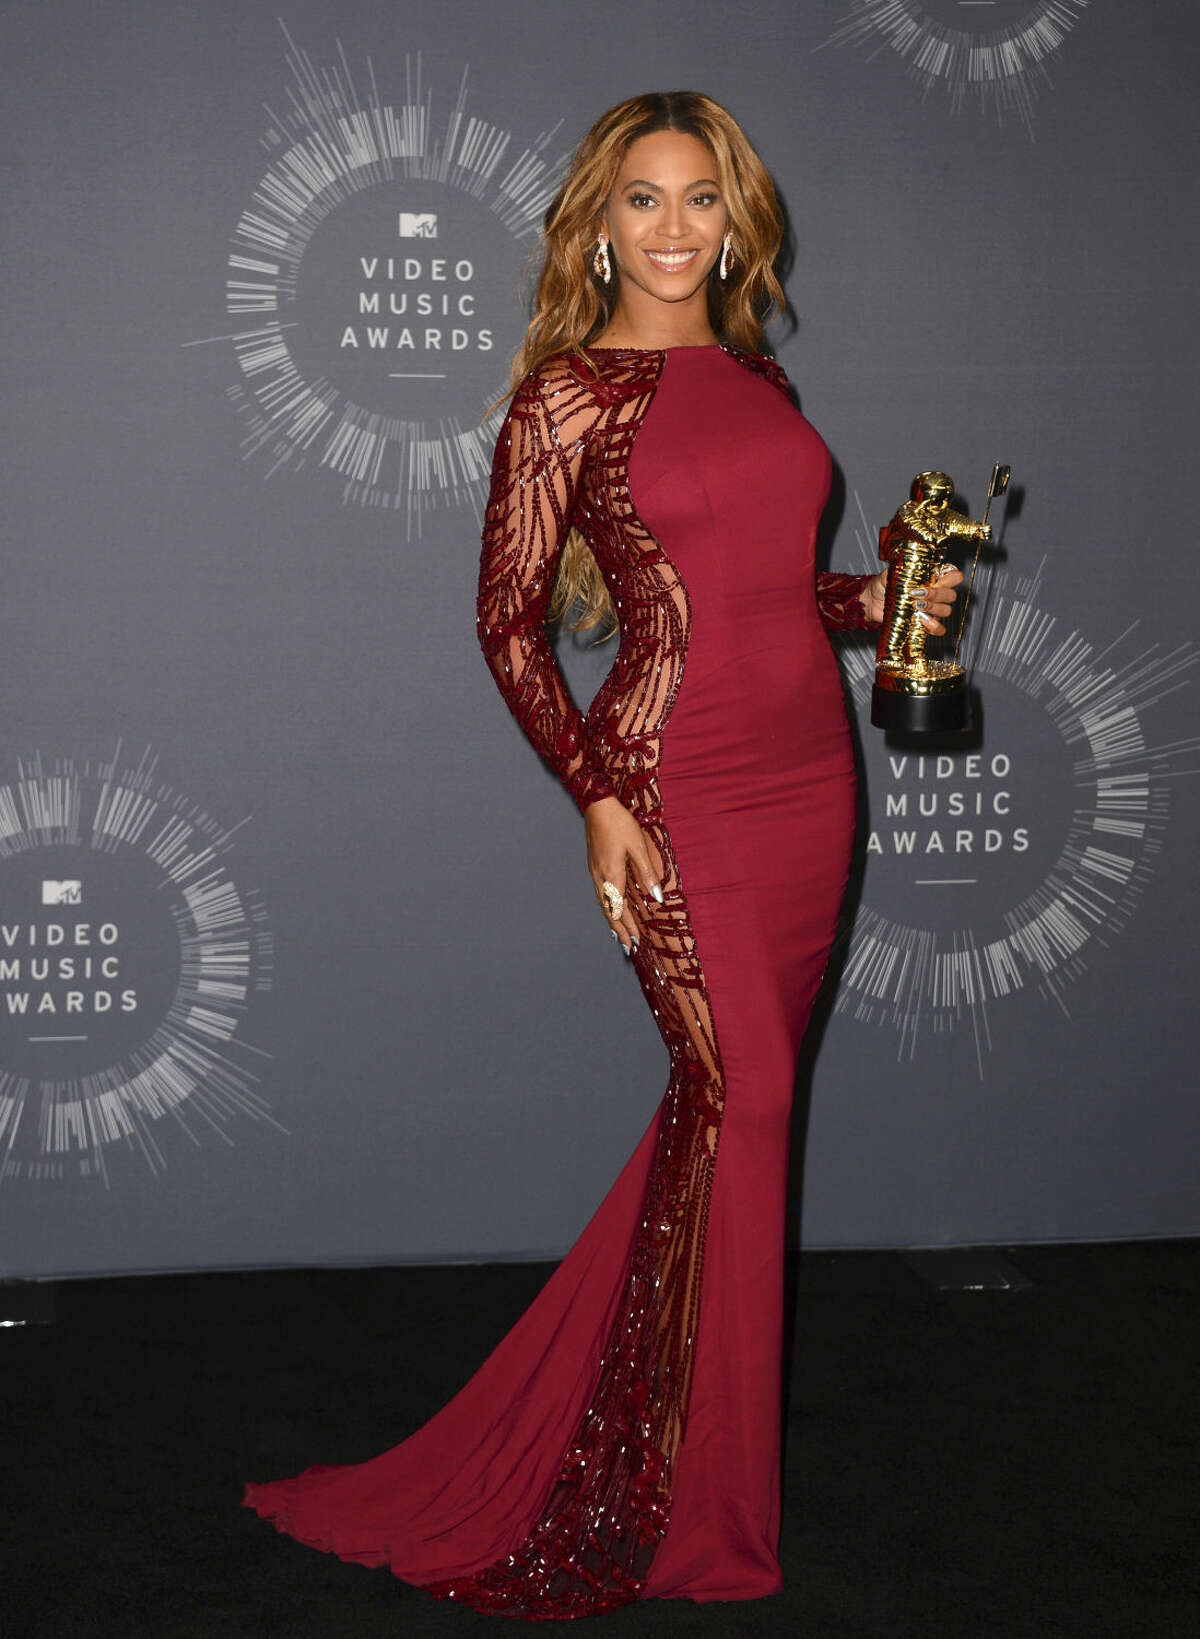 Beyonce poses with her Video Vanguard Award in the press room at the MTV Video Music Awards at The Forum on Sunday, Aug. 24, 2014, in Inglewood, Calif. (Photo by Jordan Strauss/Invision/AP)